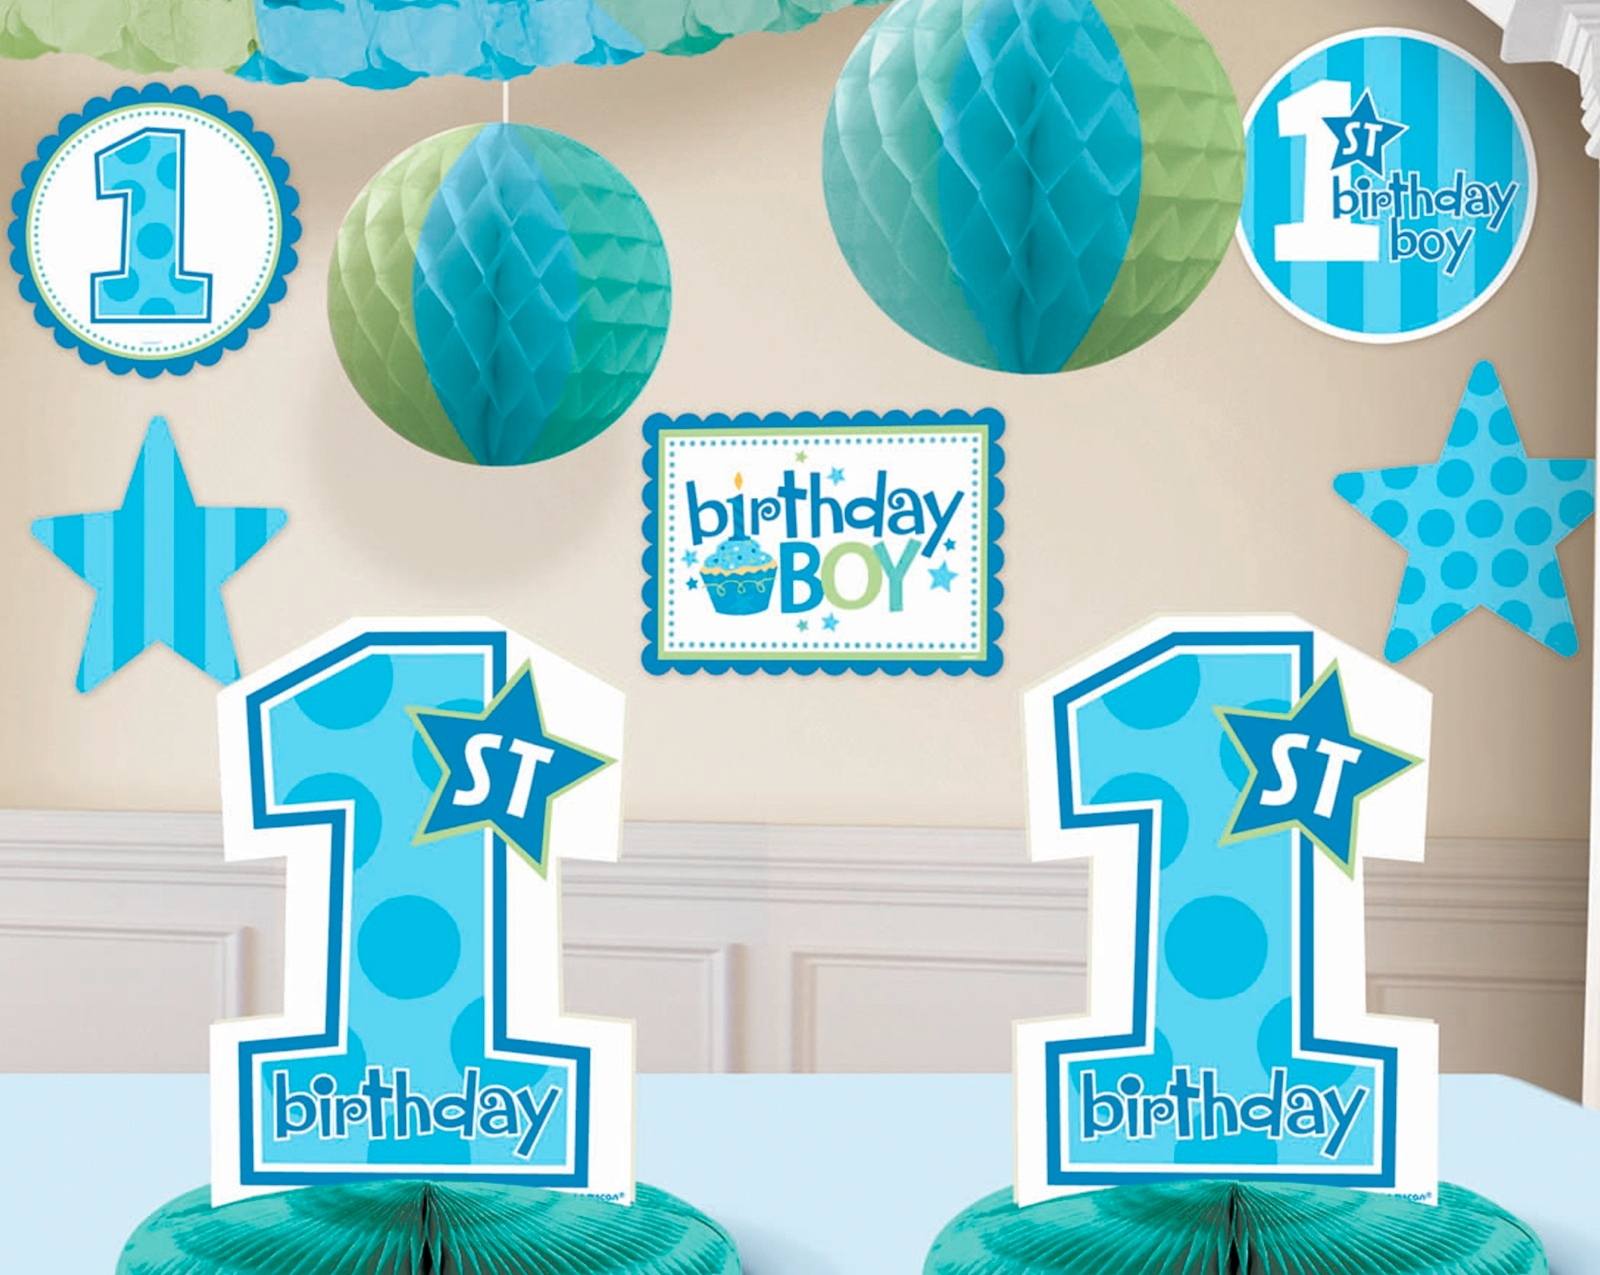 One Year Old Unforgettable Ideas Defeating The Kids Birthday Party Industrial Complex